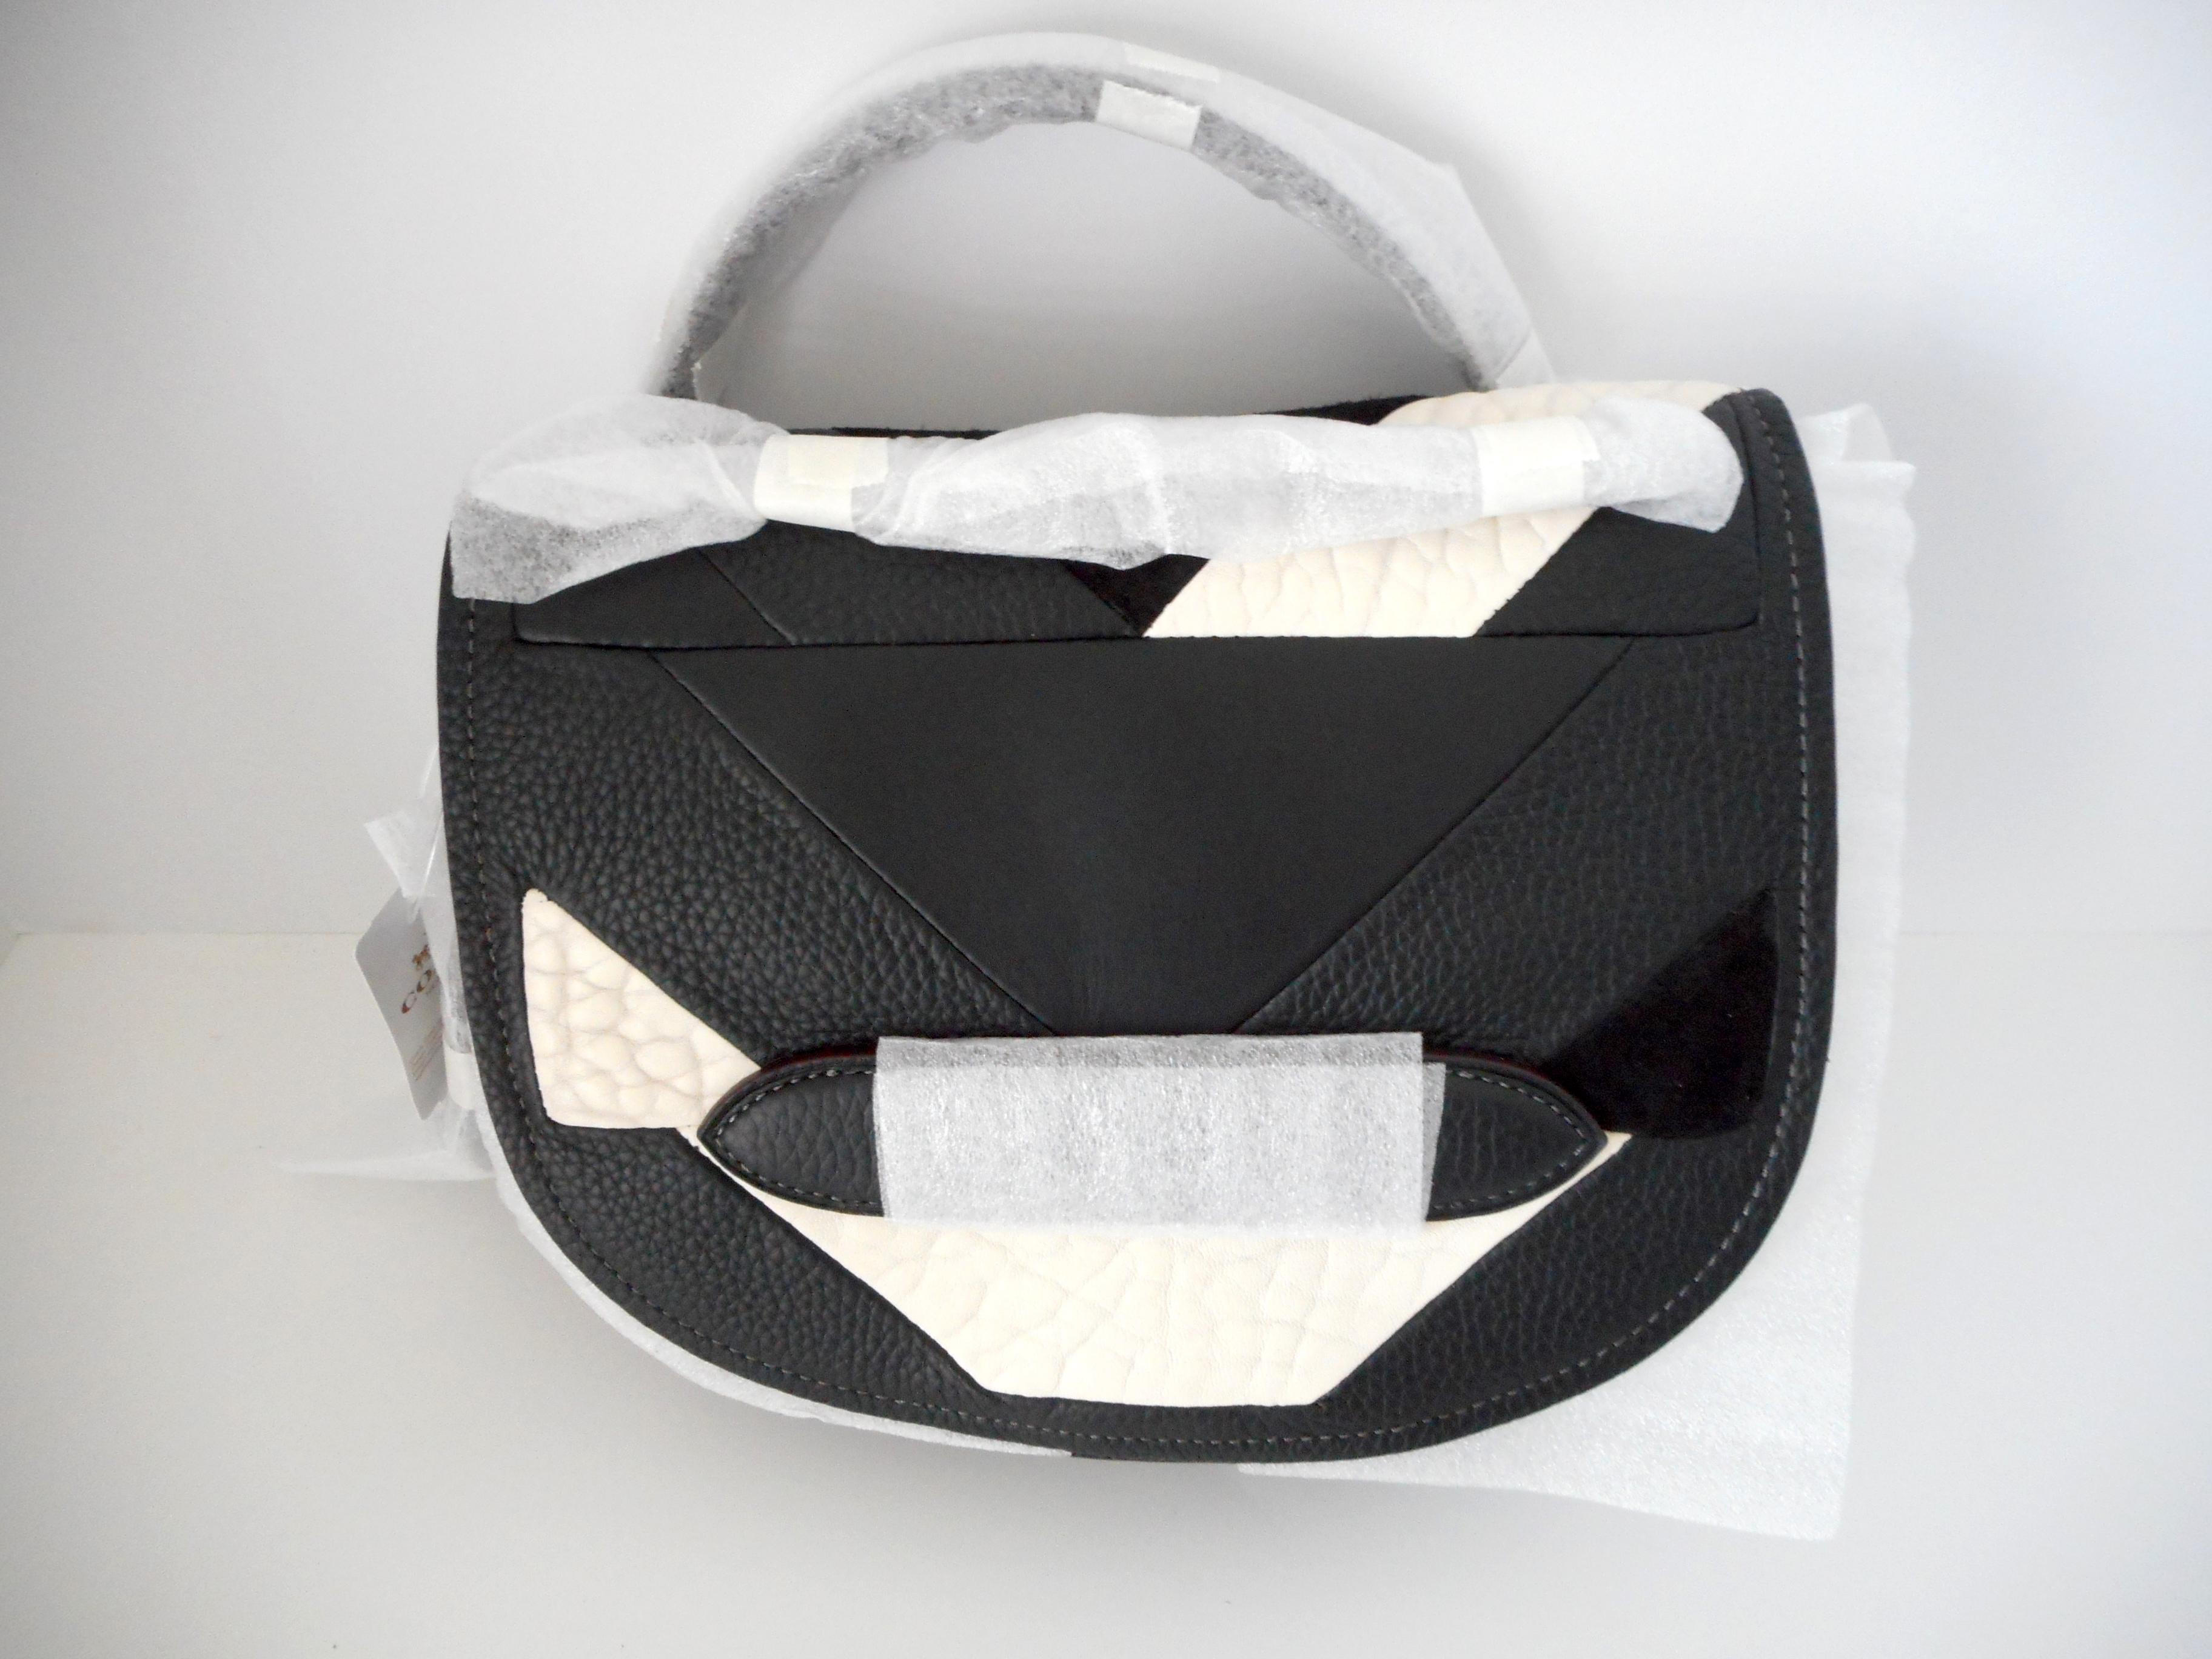 b24eb68efa ... reduced coach shadow in pieced leather style 36968 black and white  cross body bag tradesy 73c4d